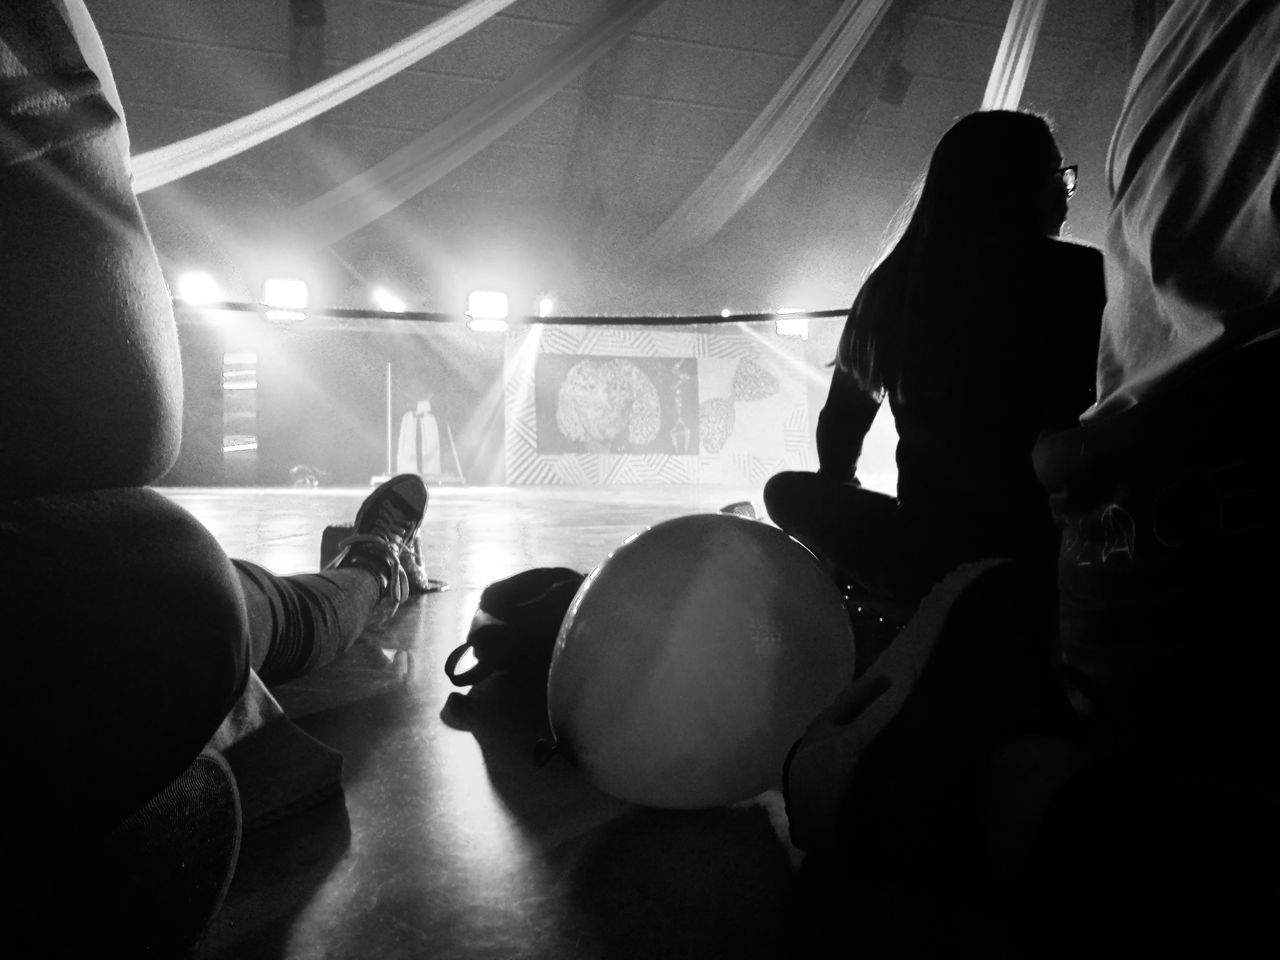 Indoors  People Crowd Music Adult Young Adult Audience Nightlife Concert Audience And Artist Point Of View Festival Balloon Blackandwhite Black And White Feet Lights Party The Great Outdoors - 2017 EyeEm Awards The Photojournalist - 2017 EyeEm Awards The Street Photographer - 2016 EyeEm Awards Live For The Story Popular Music Concert Adults Only WeekOnEyeEm